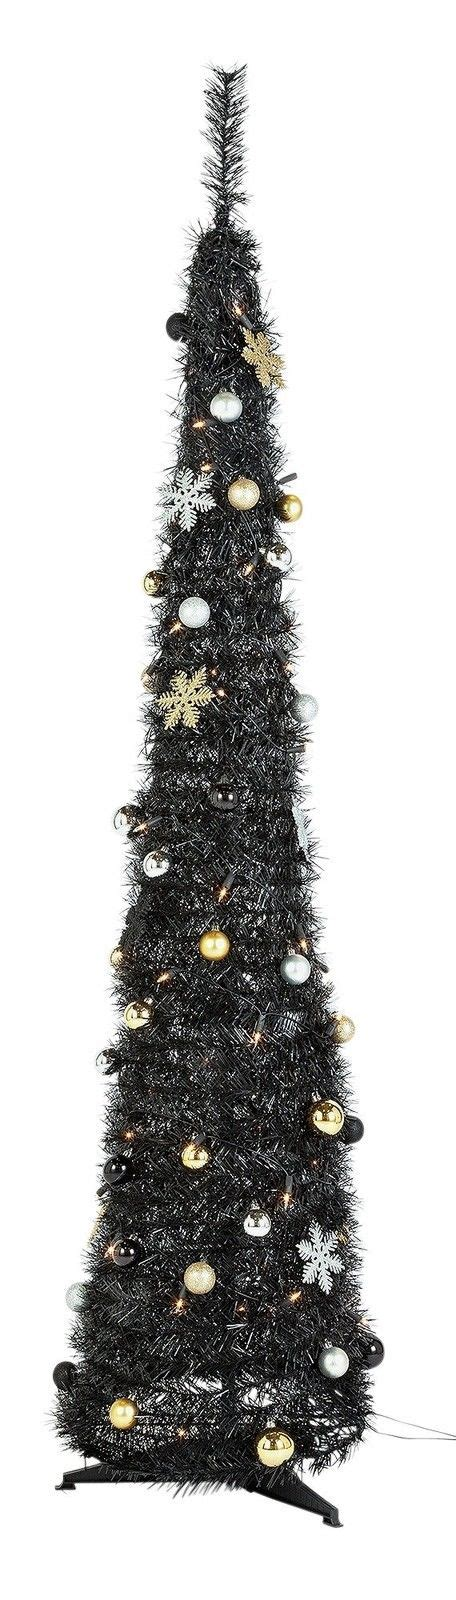 pop up luxe christmas tree from the official argos shop on